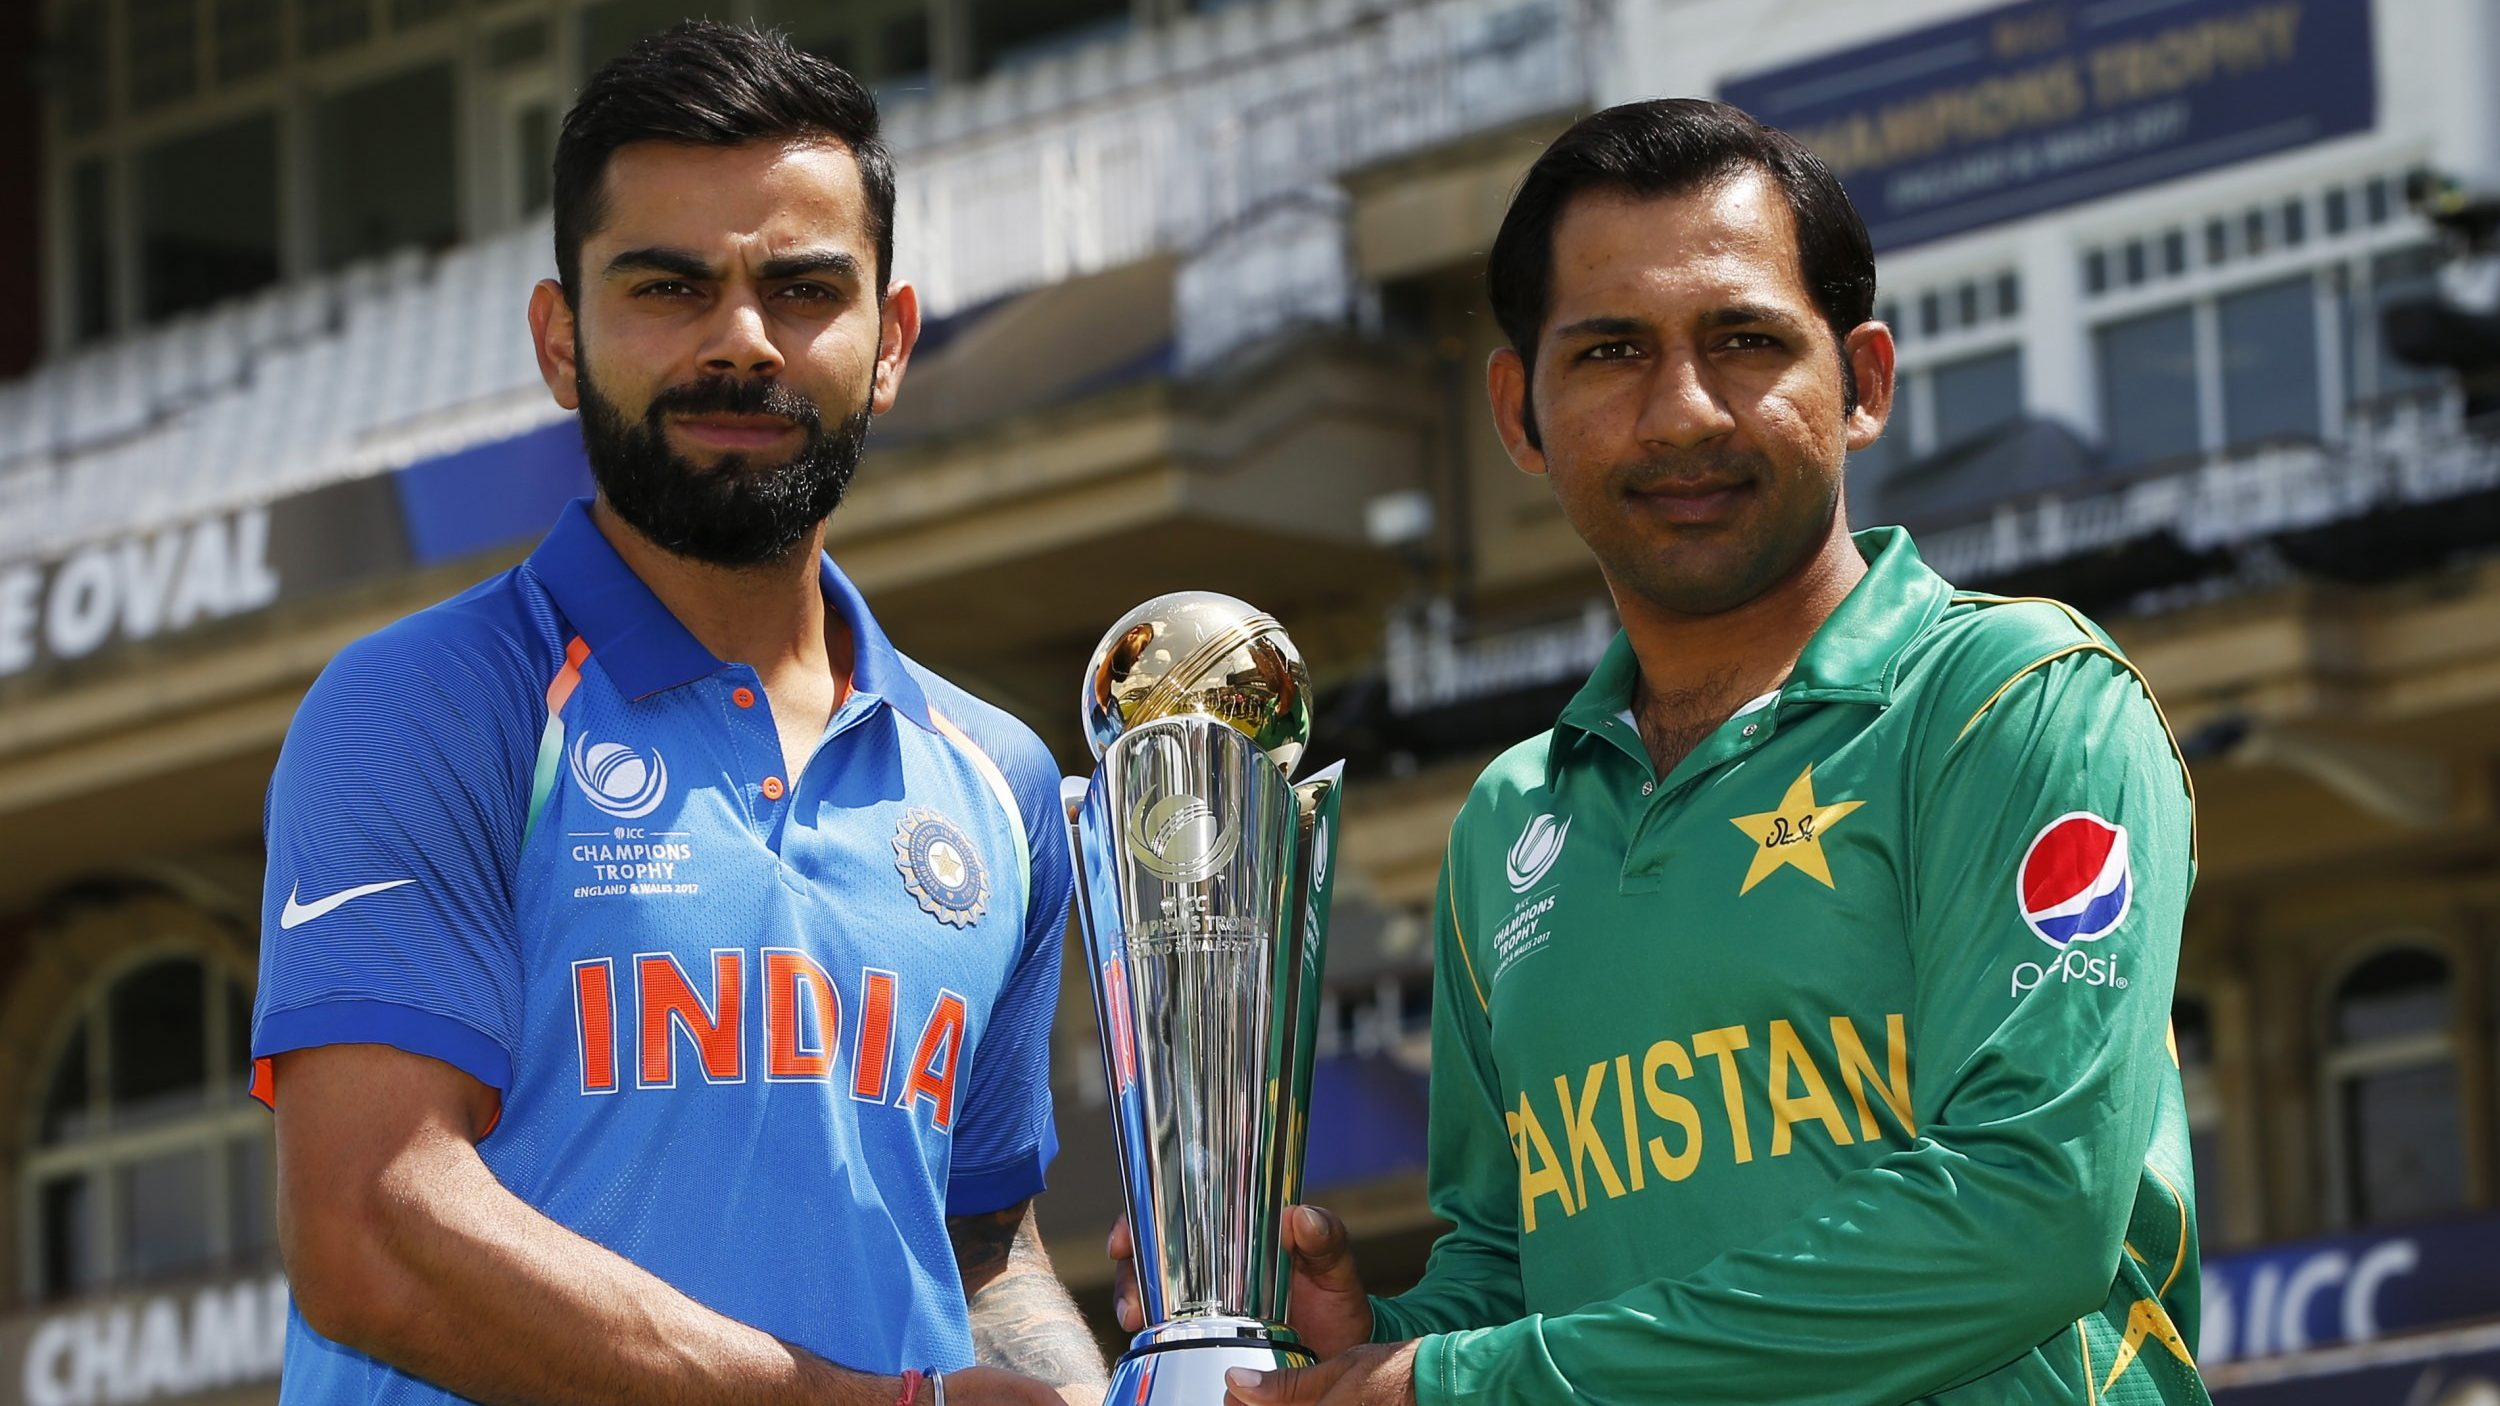 pak and india in T20 2021